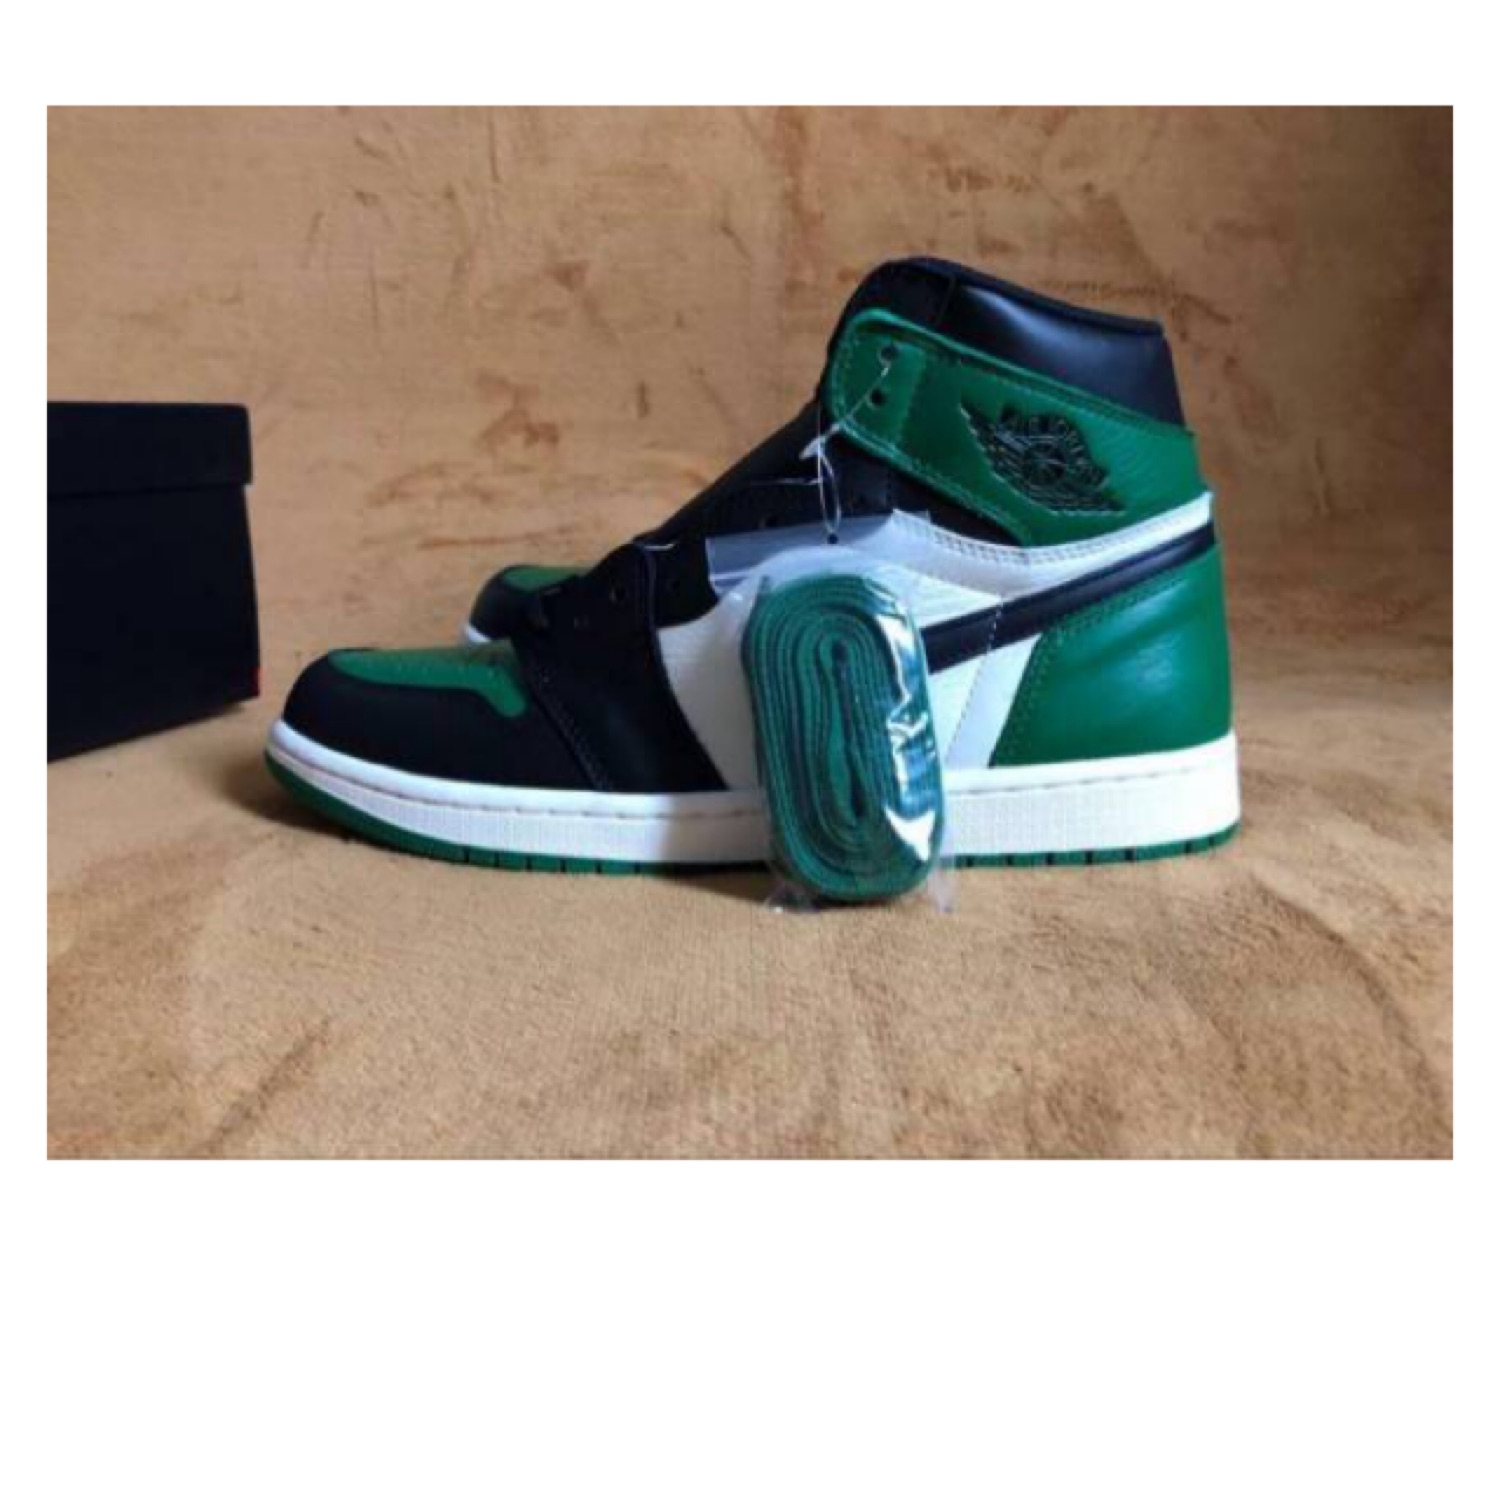 newest 4f942 a989e Air Jordan 1 Retro High Og Pine Green Size 12